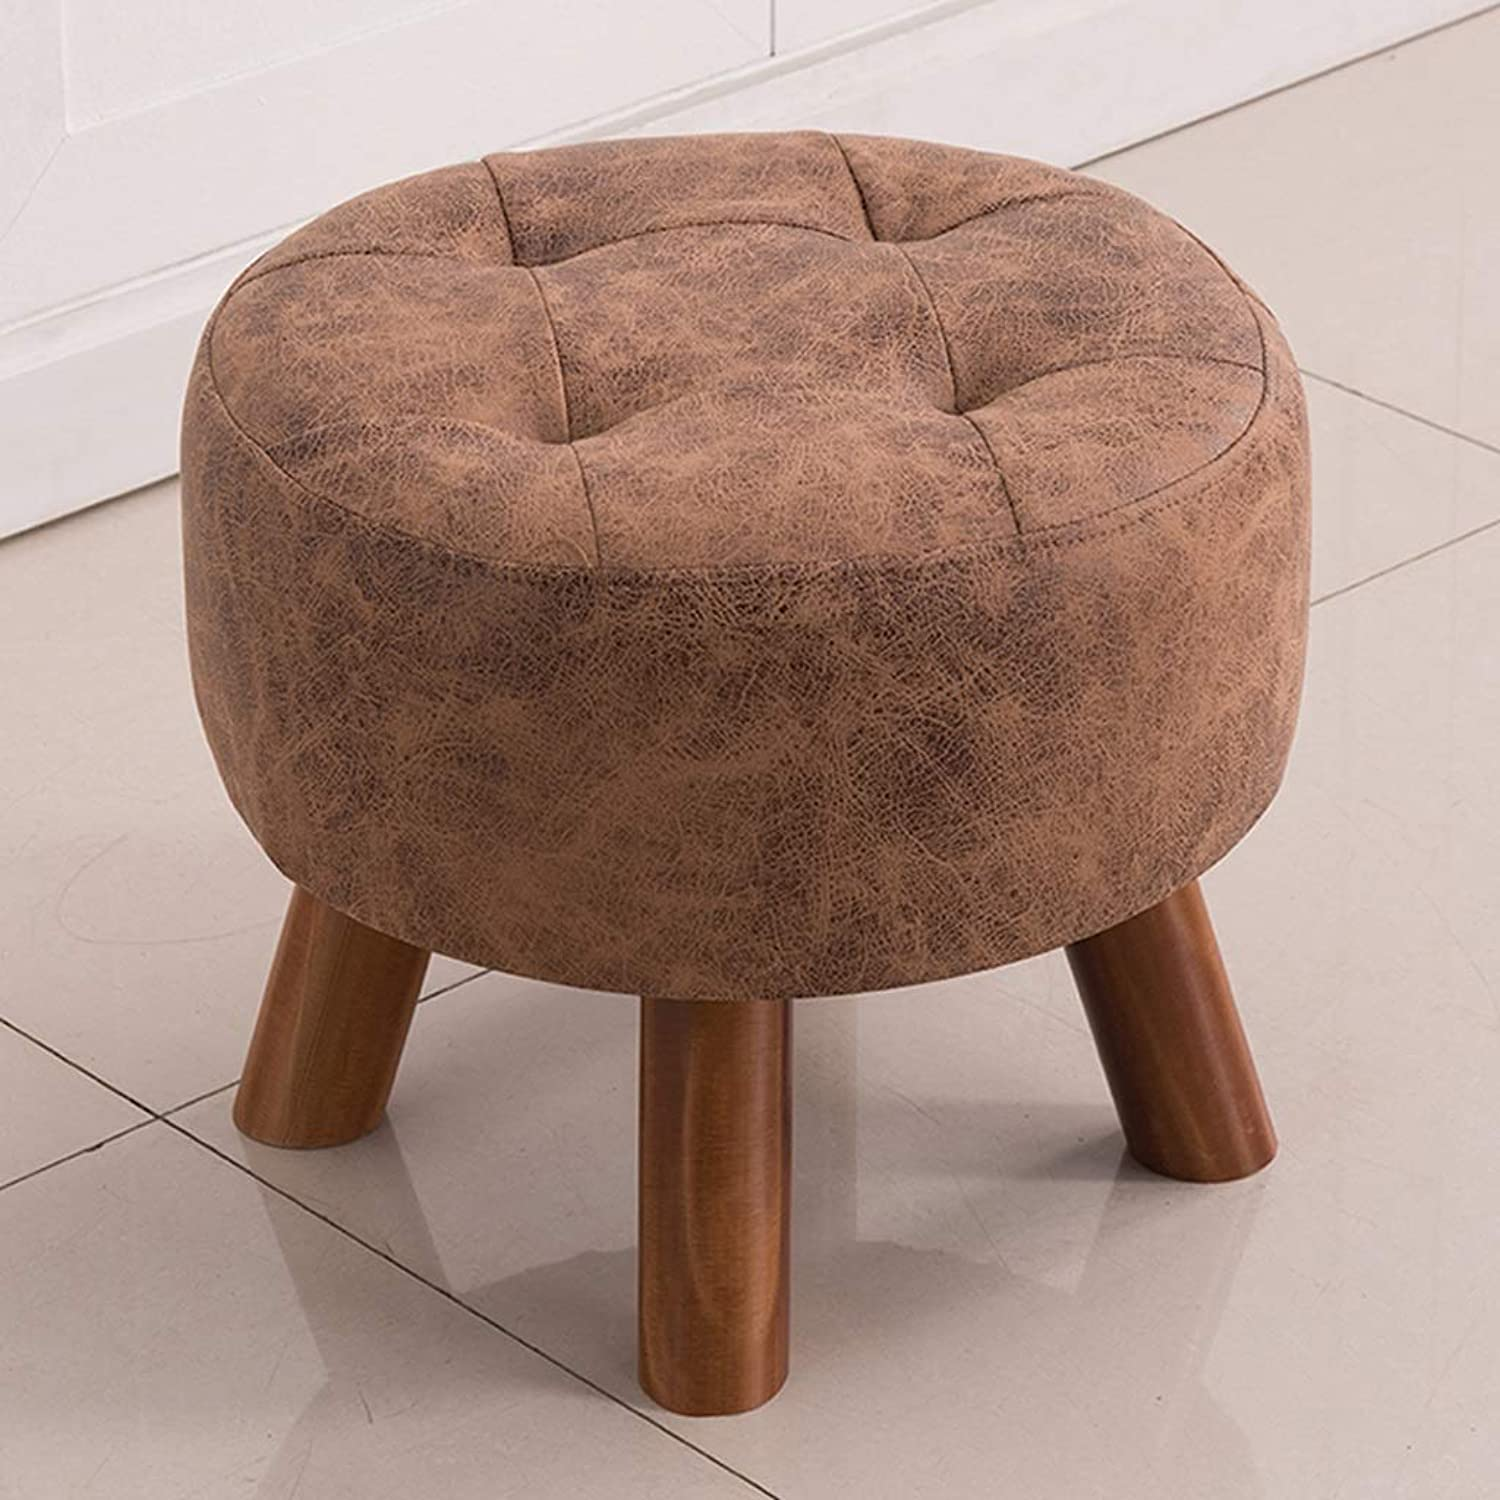 Solid Wood Round Stool Fashion Cloth Art Sofa Chair Tea Table Dressing Table Technology Cloth Stool Porch shoes Changing Stool (Size   Coffee color)